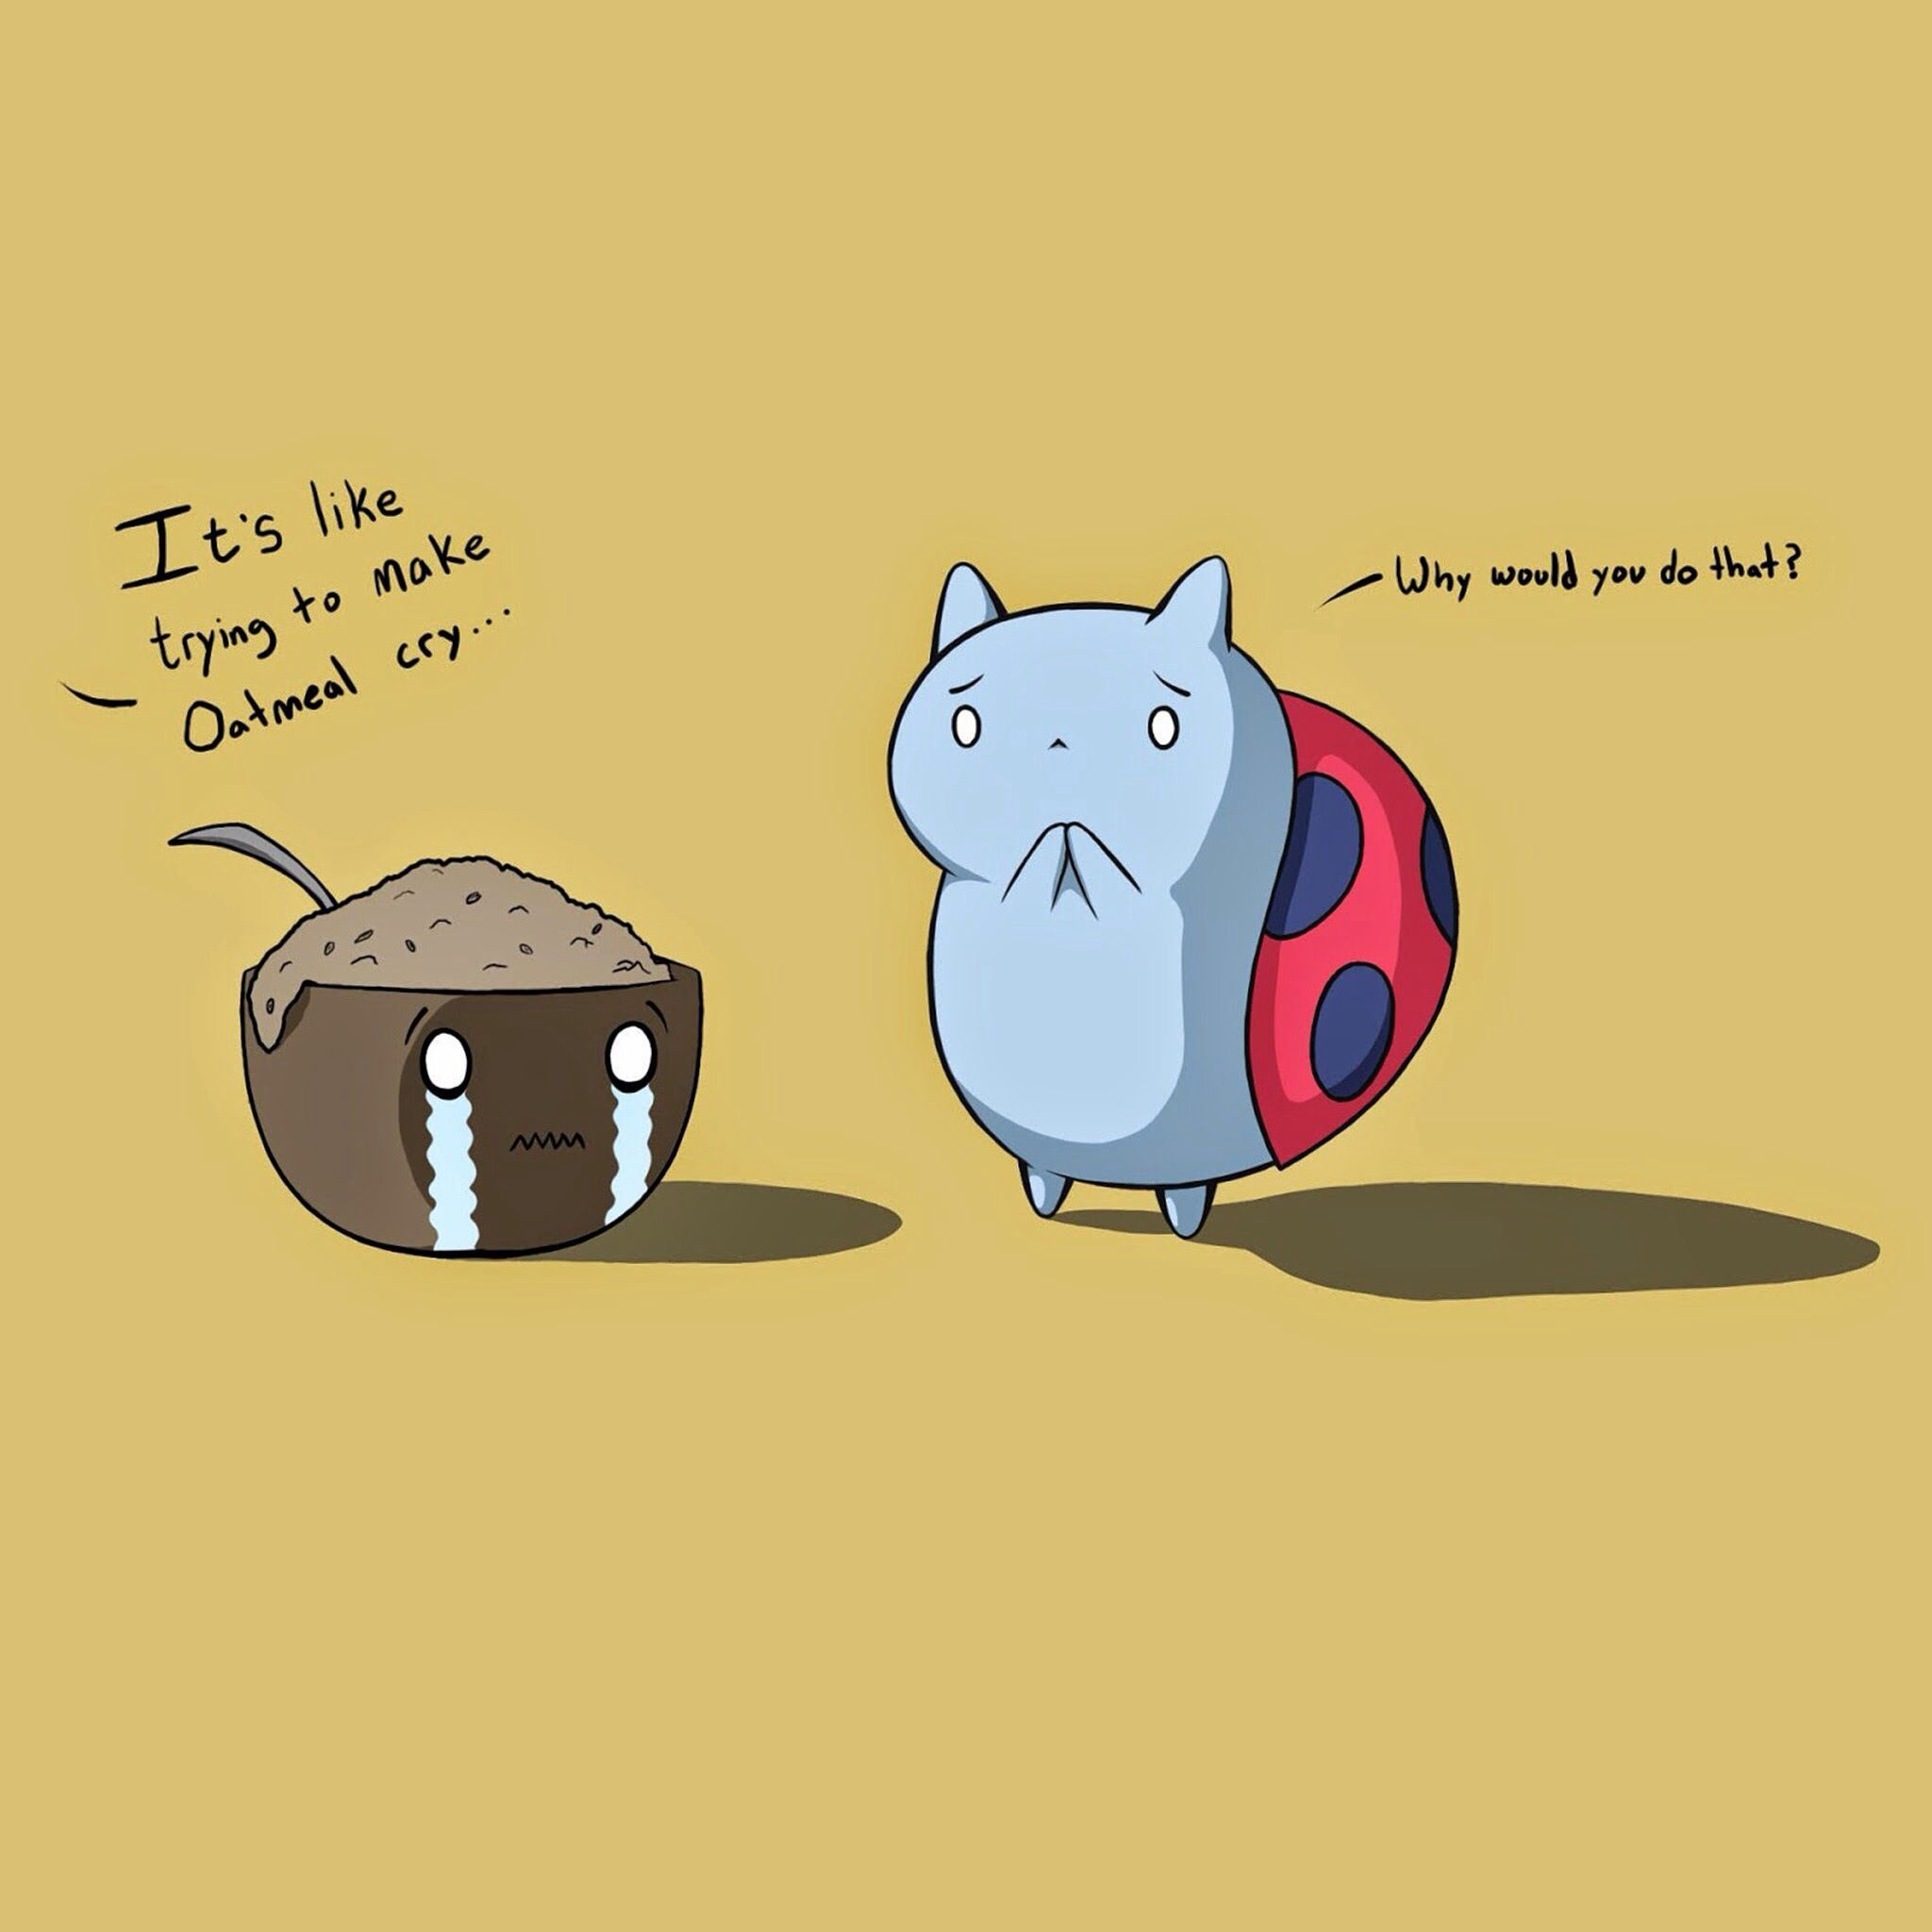 Res: 2048x2048, Oatmeal crying and catbug next to oatmeal